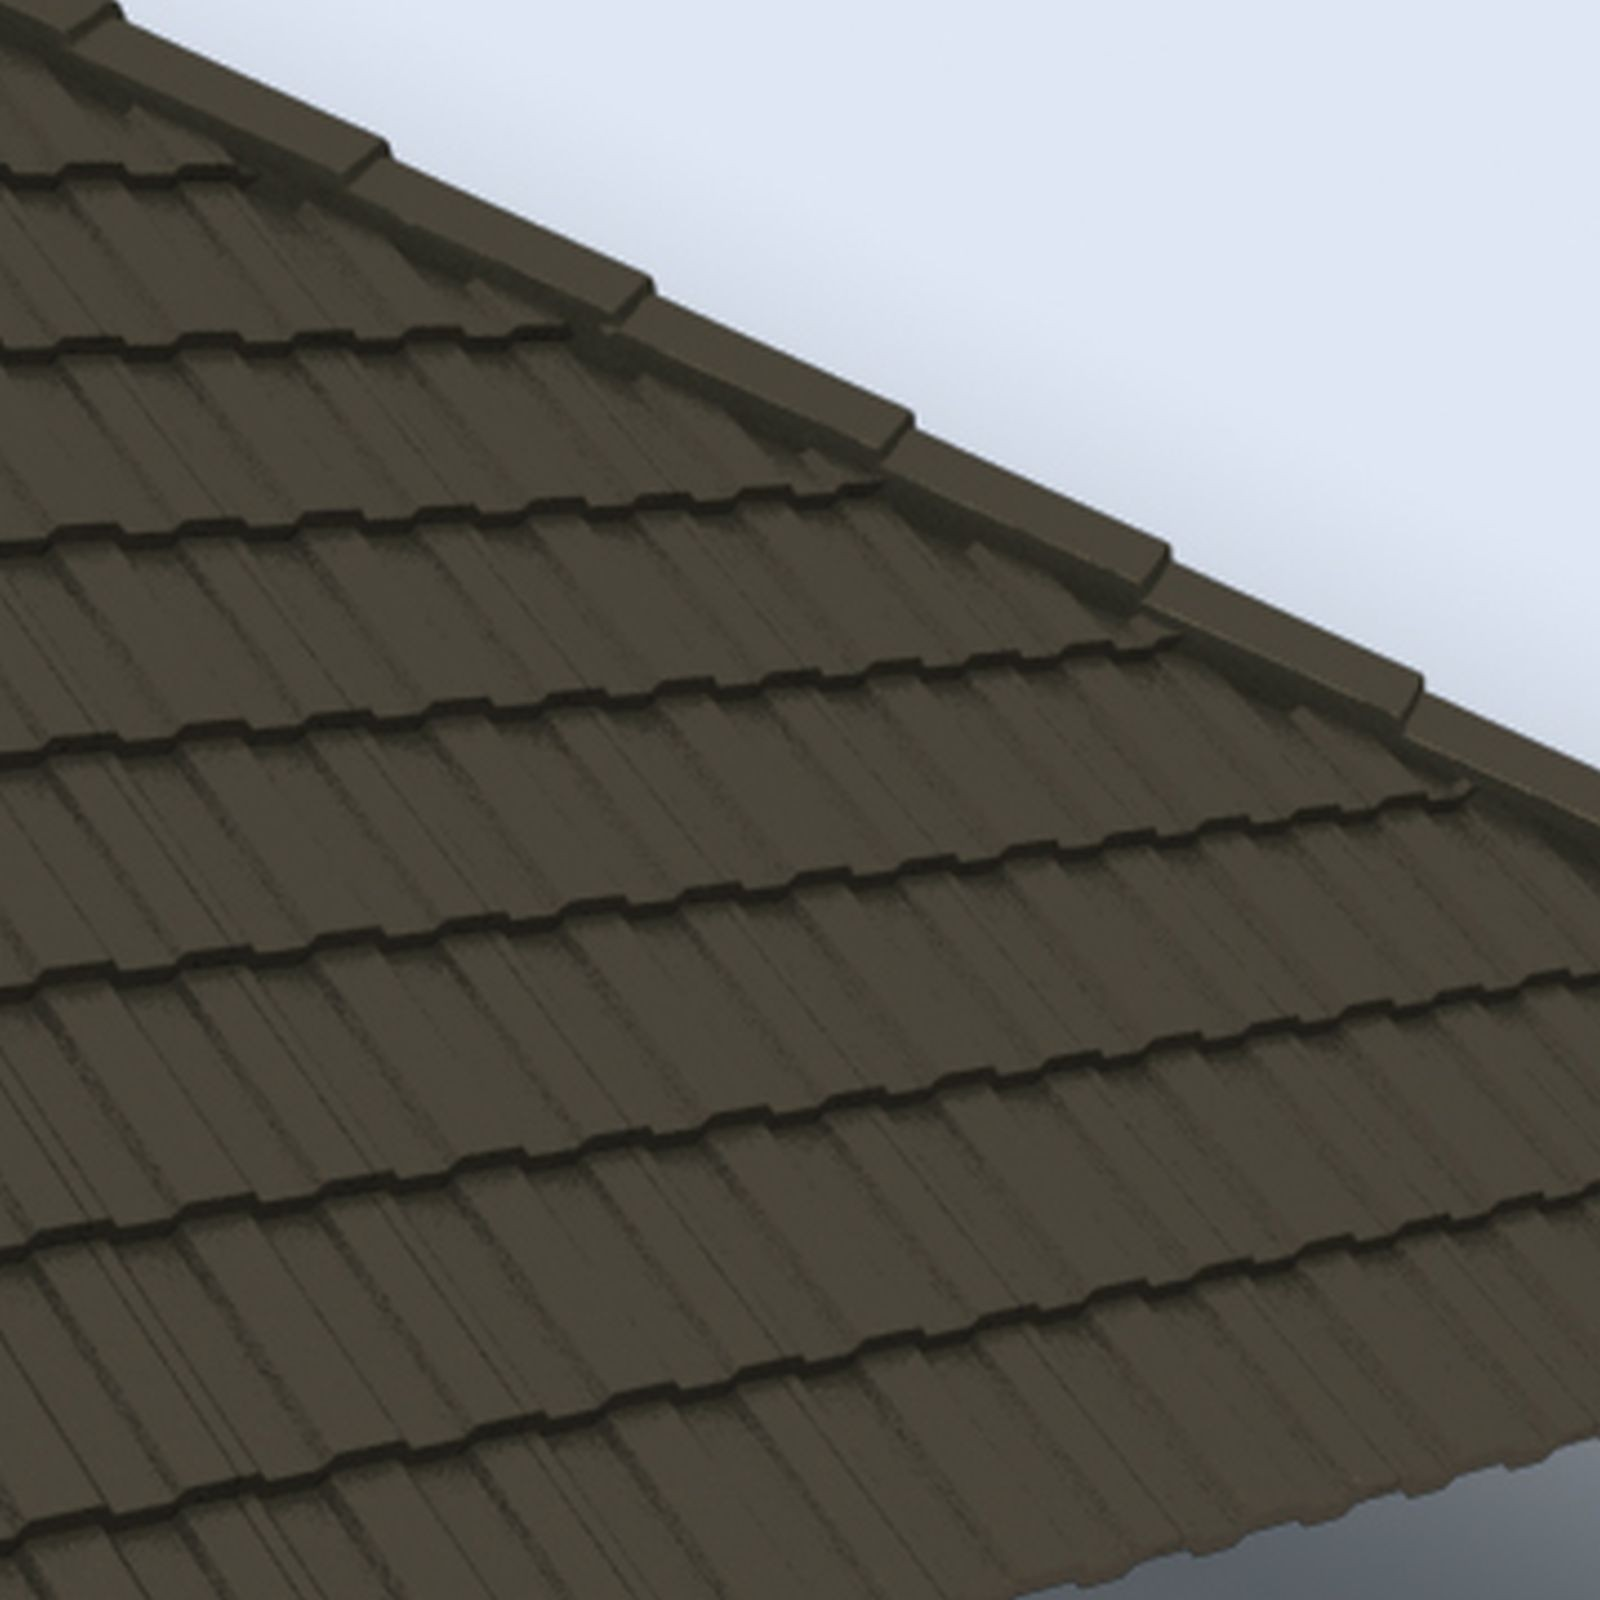 Slimline Concrete Roof Tiles - Design Content